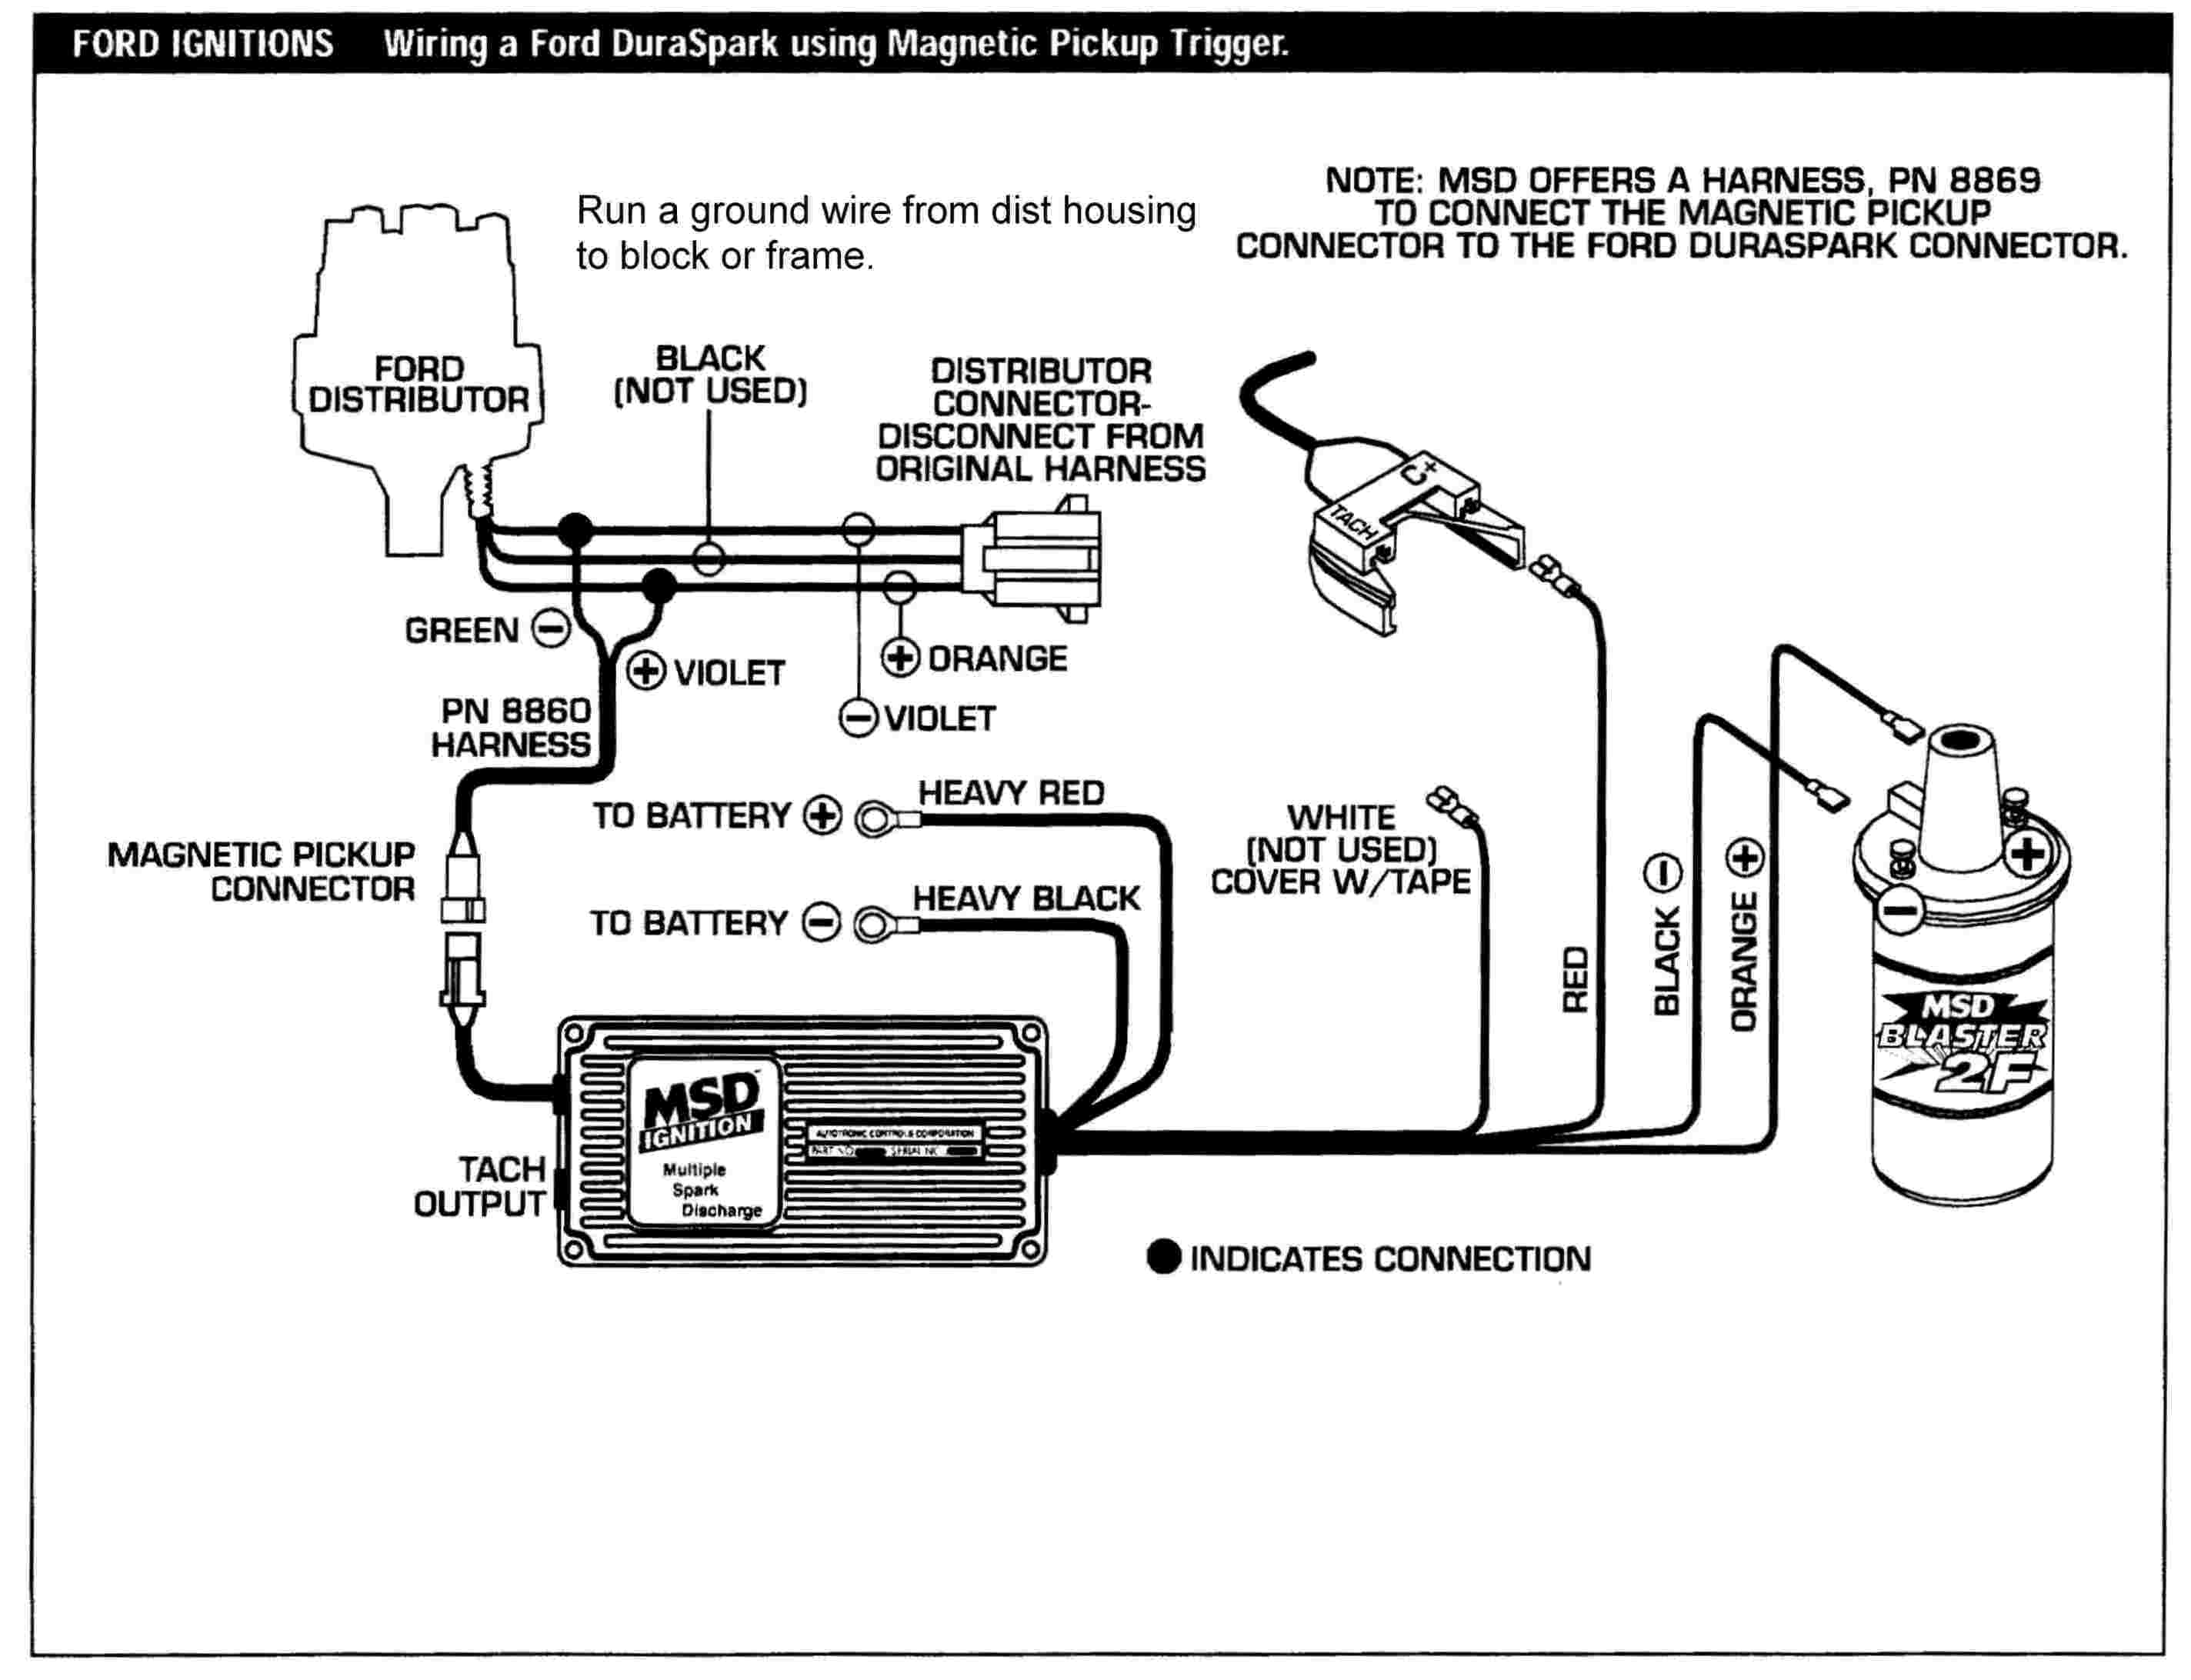 Diagram 1957 Ford Thunderbird Wiring Diagram Msd Ignition Full Version Hd Quality Msd Ignition Outletdiagram Politopendays It - msd 6200 wiring diagram